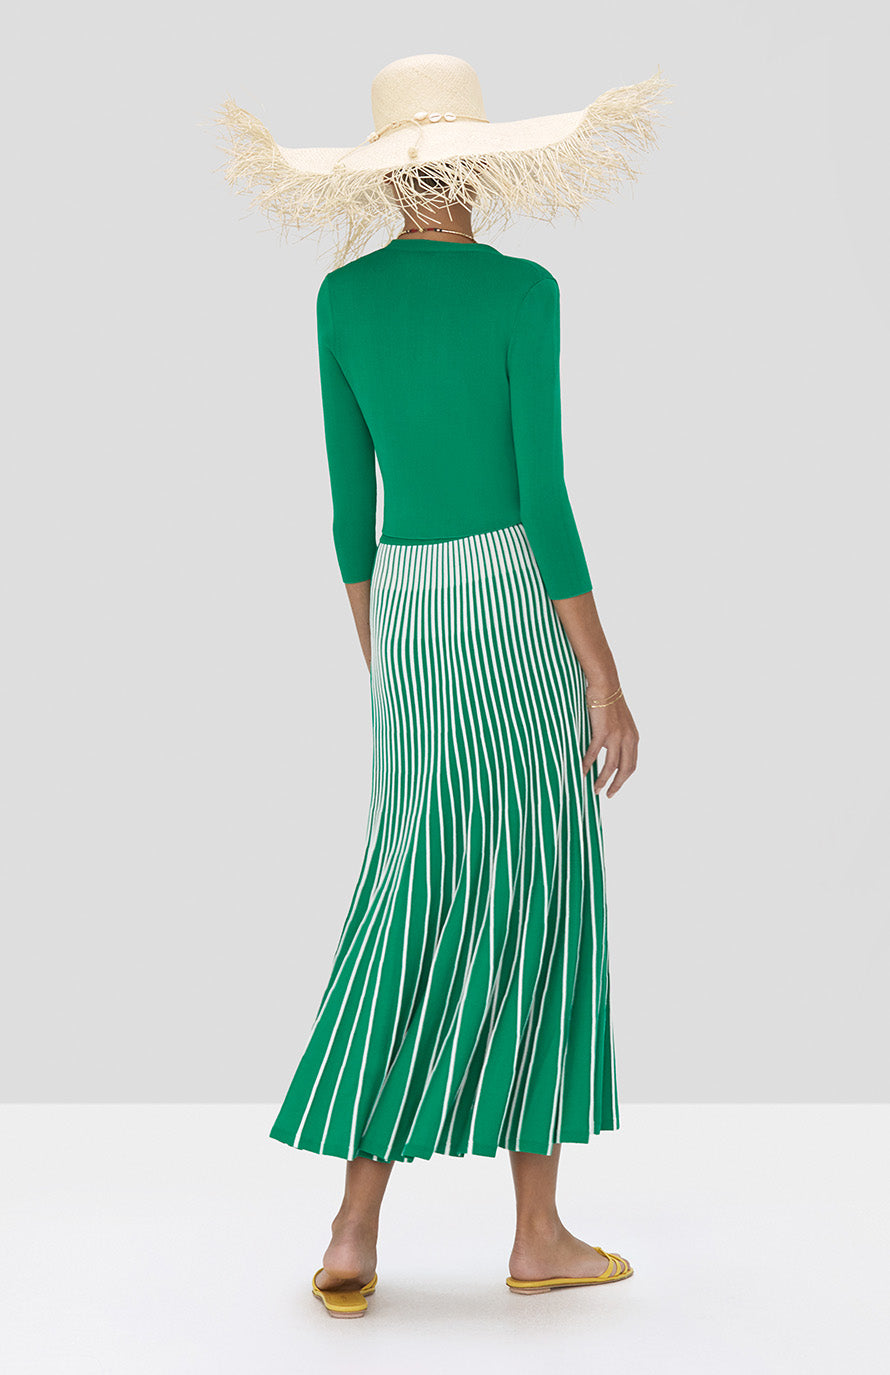 Alexis Petal Cardigan in Green and Vani Skirt in Green and White Stripes from Spring Summer 2020 - Rear View